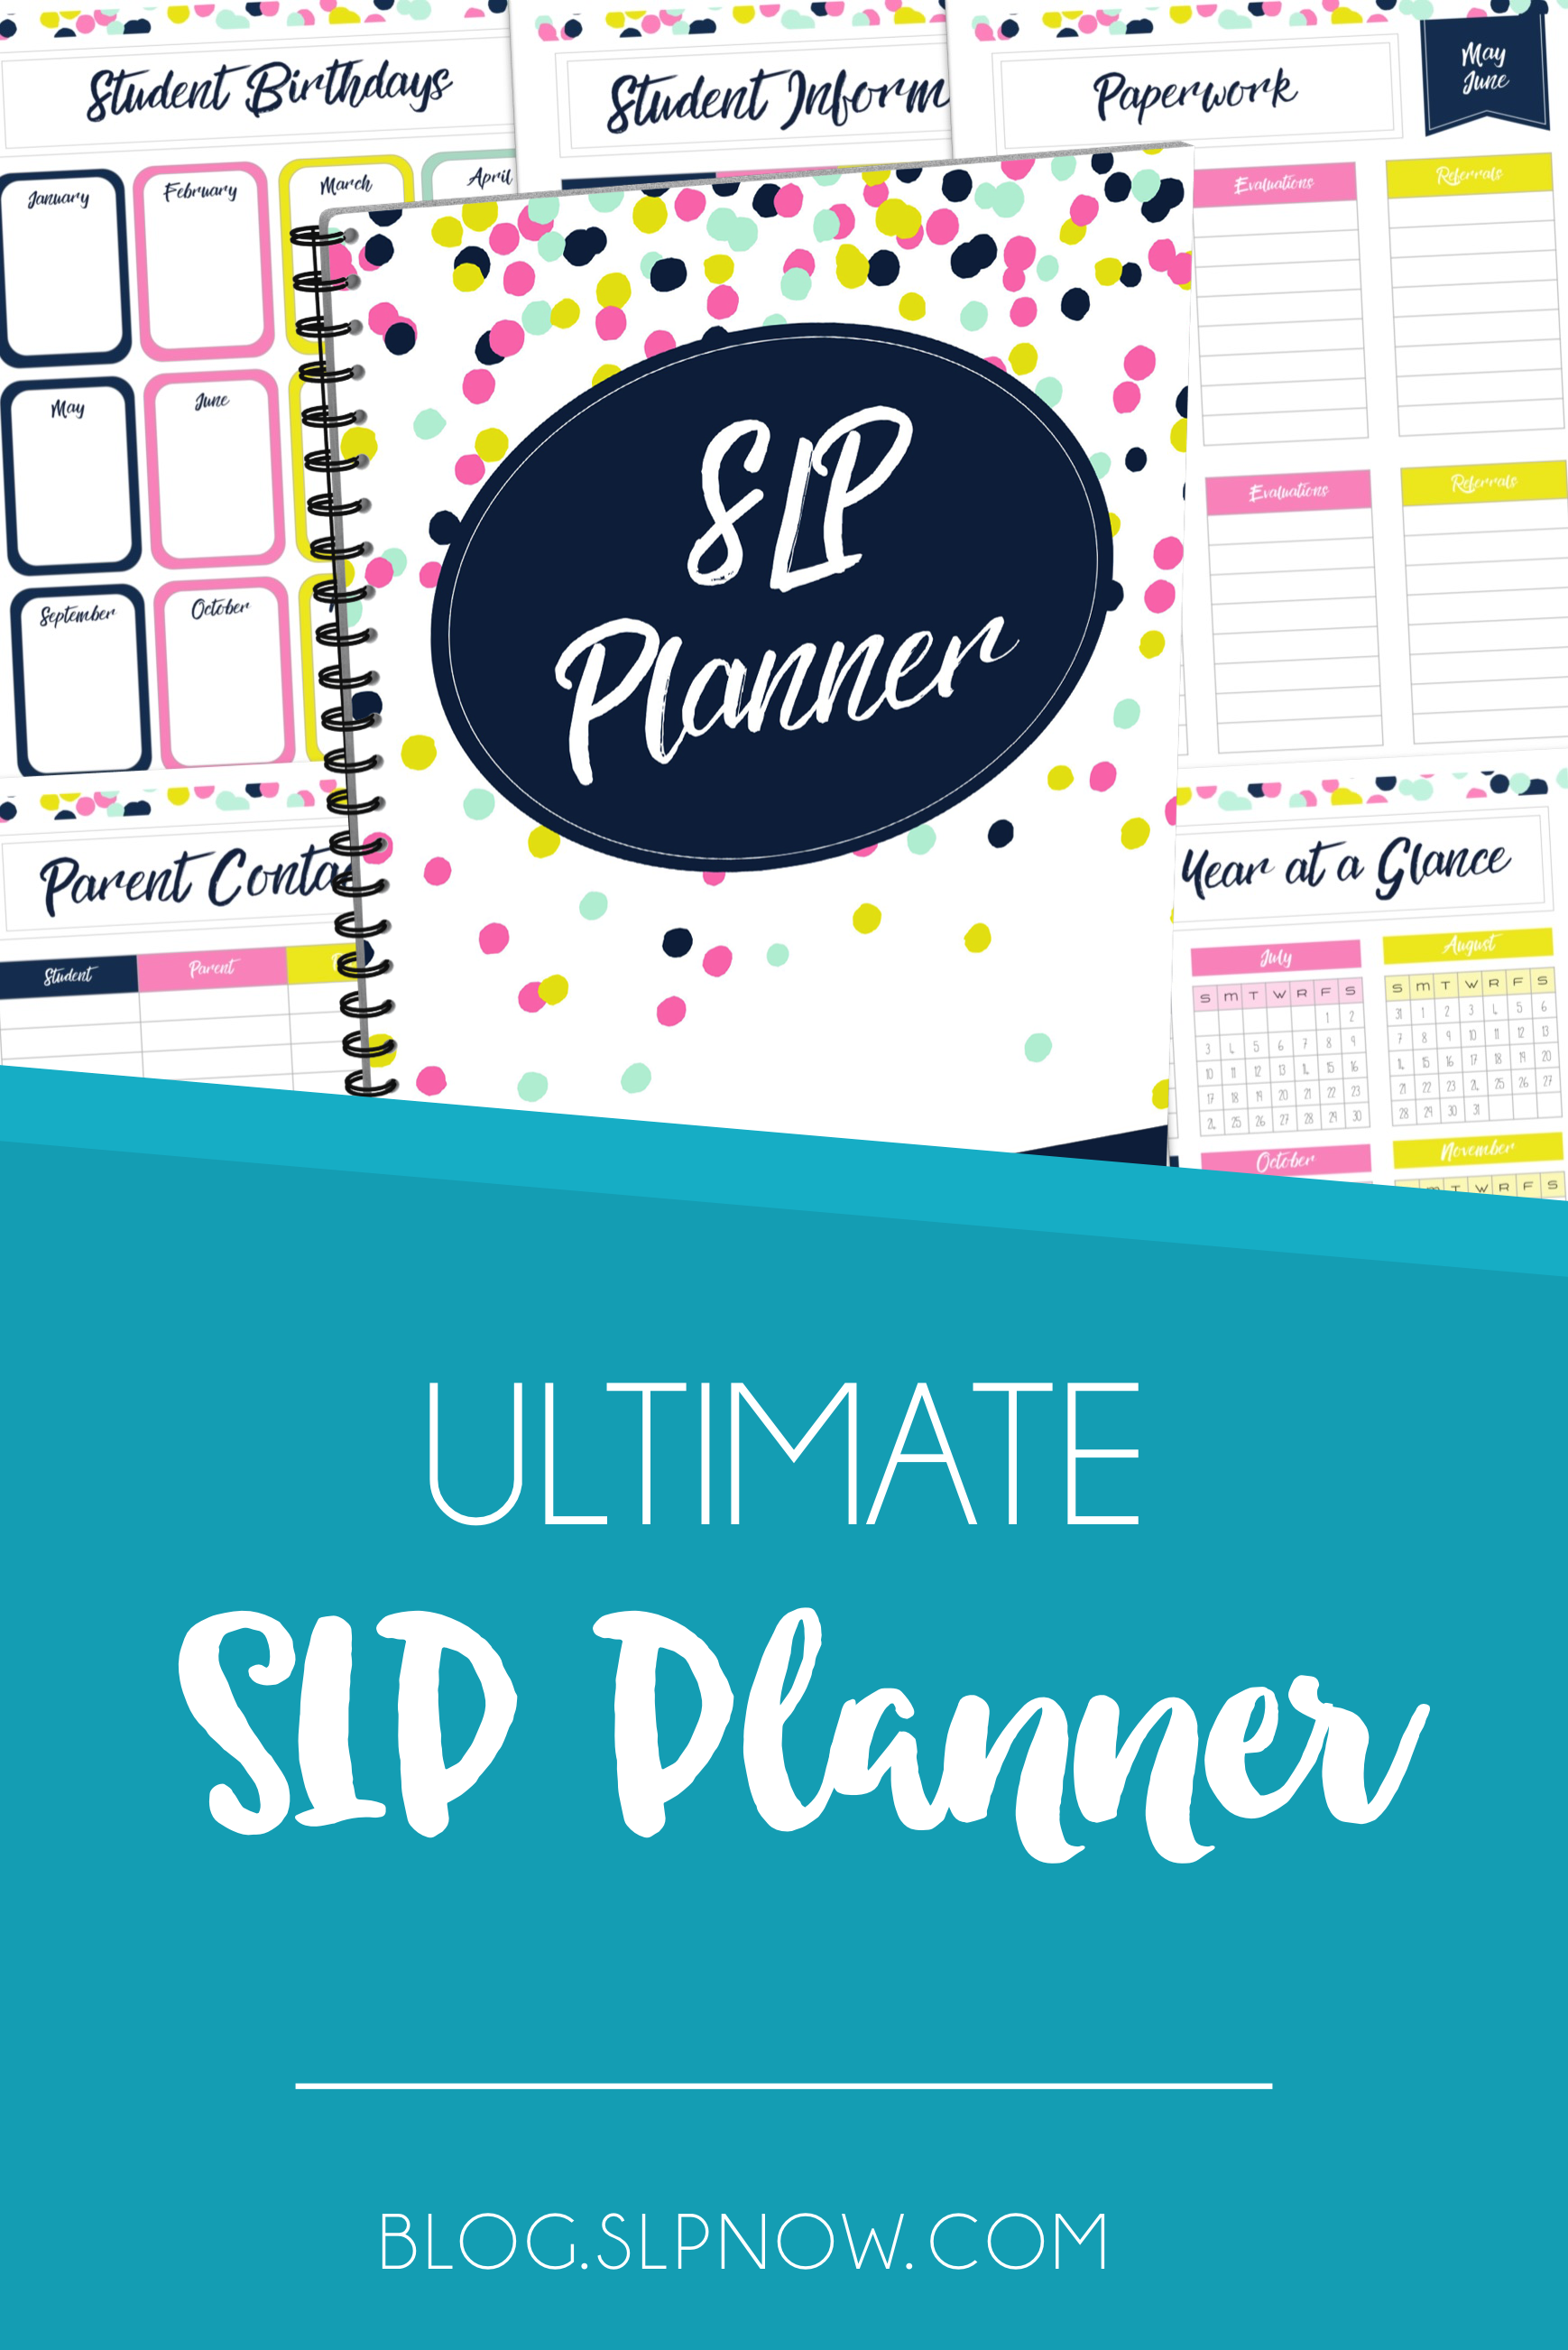 Despite all of the many planners out there, there isn't an SLP planner that we find really helpful. That's why I made the Ultimate SLP Planner, which is not only custom-made for SLPs but is also customizable and jam-packed with all sorts of planning resources to keep you organized! Read more about it in this post!